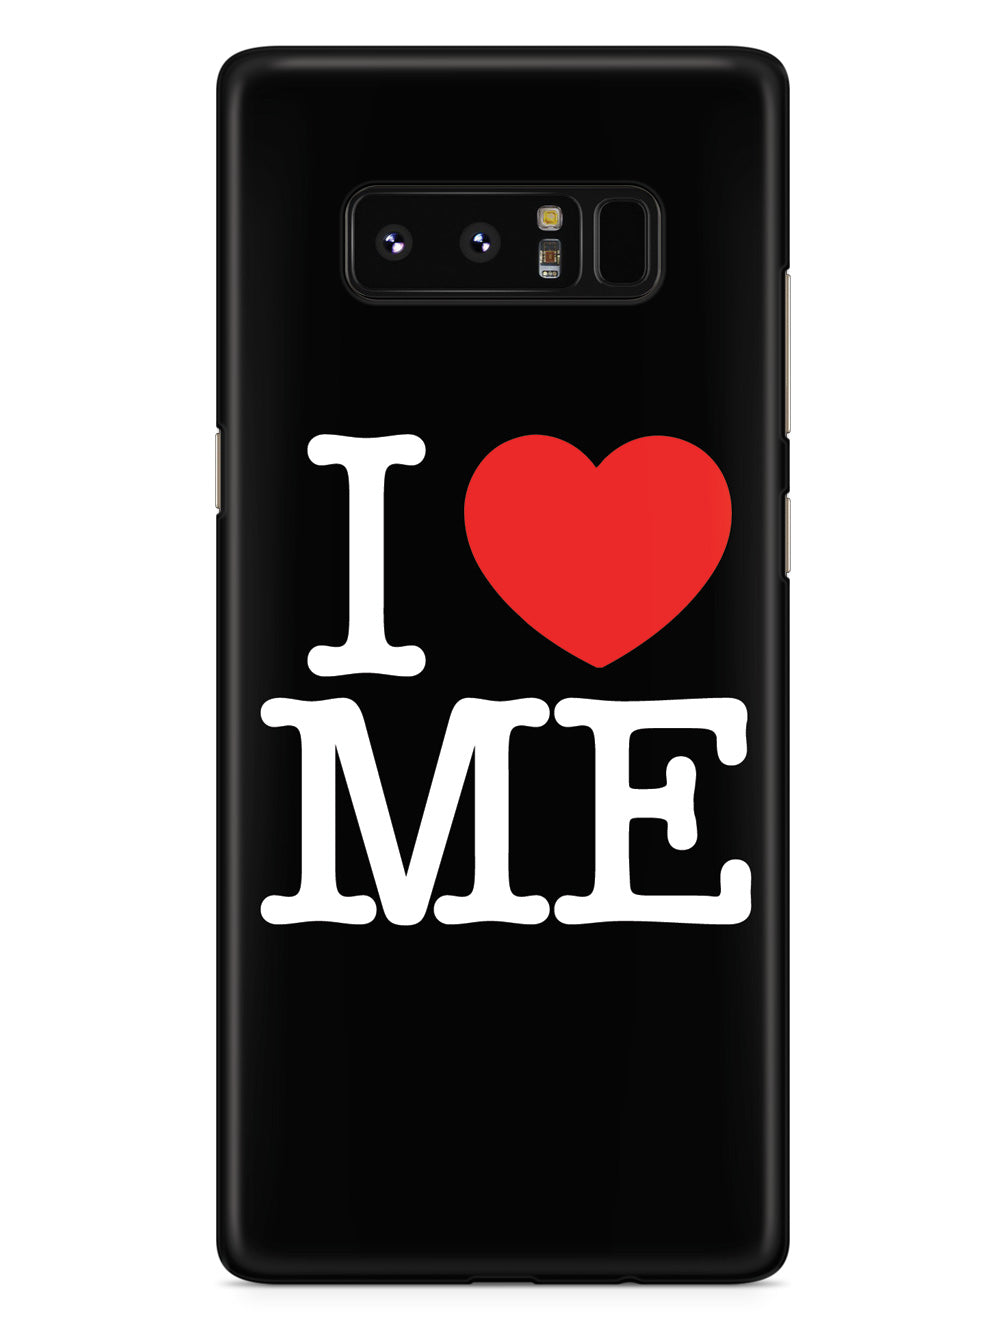 I Love Me - Black Case